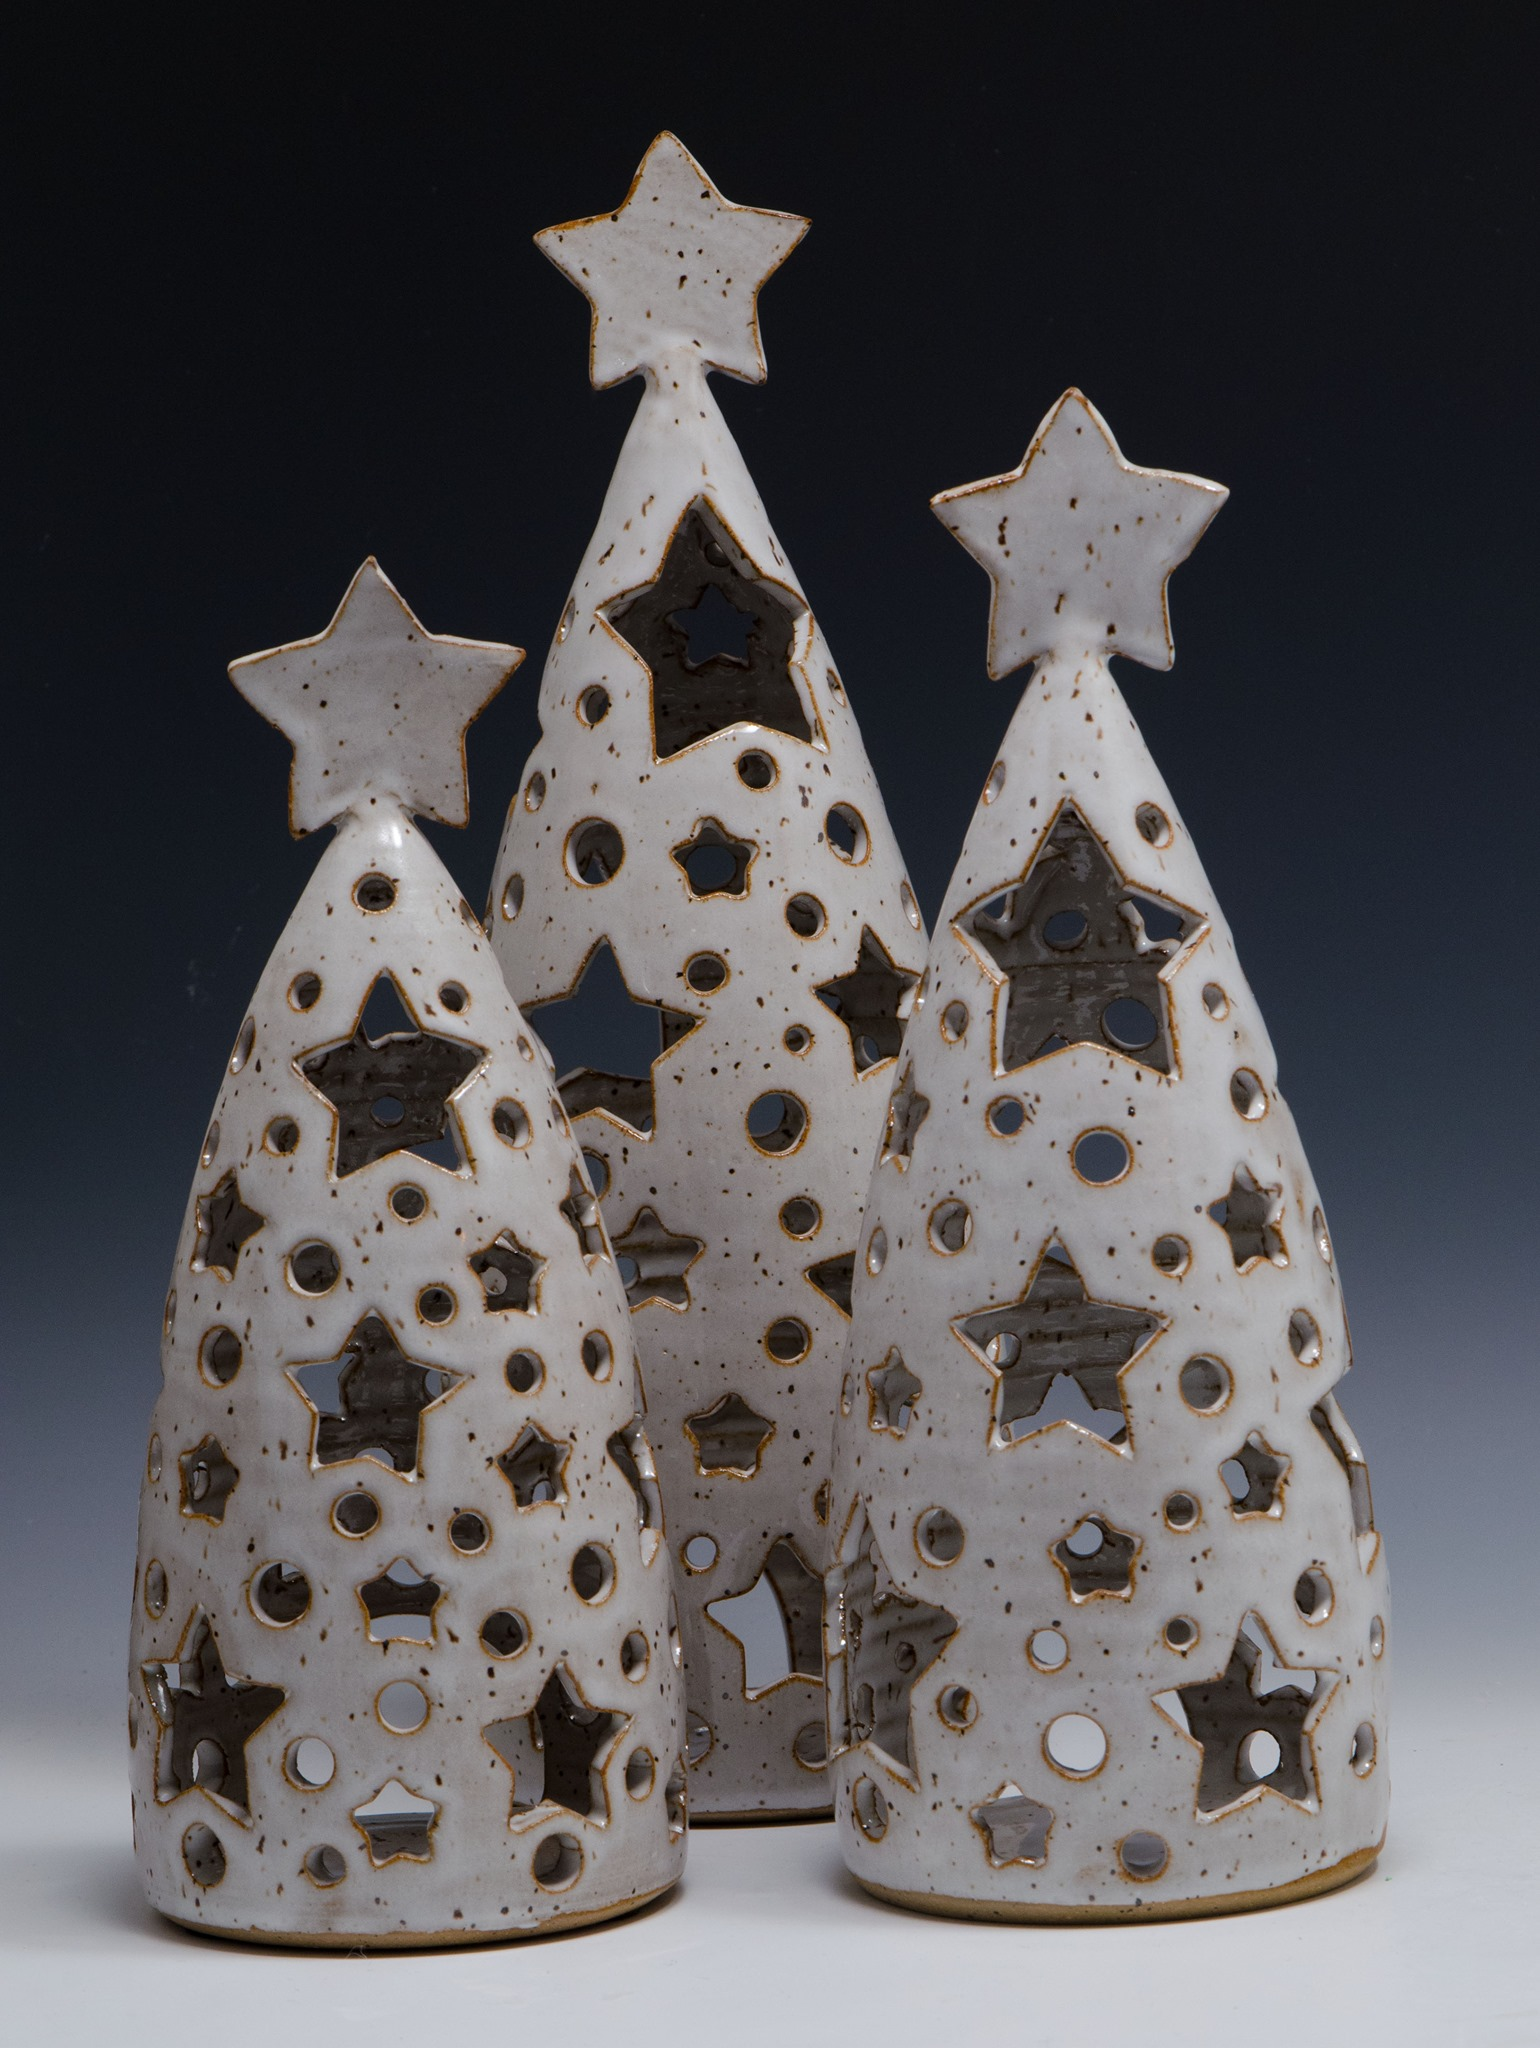 pottery holiday decorations by Michael Kim Burroughs